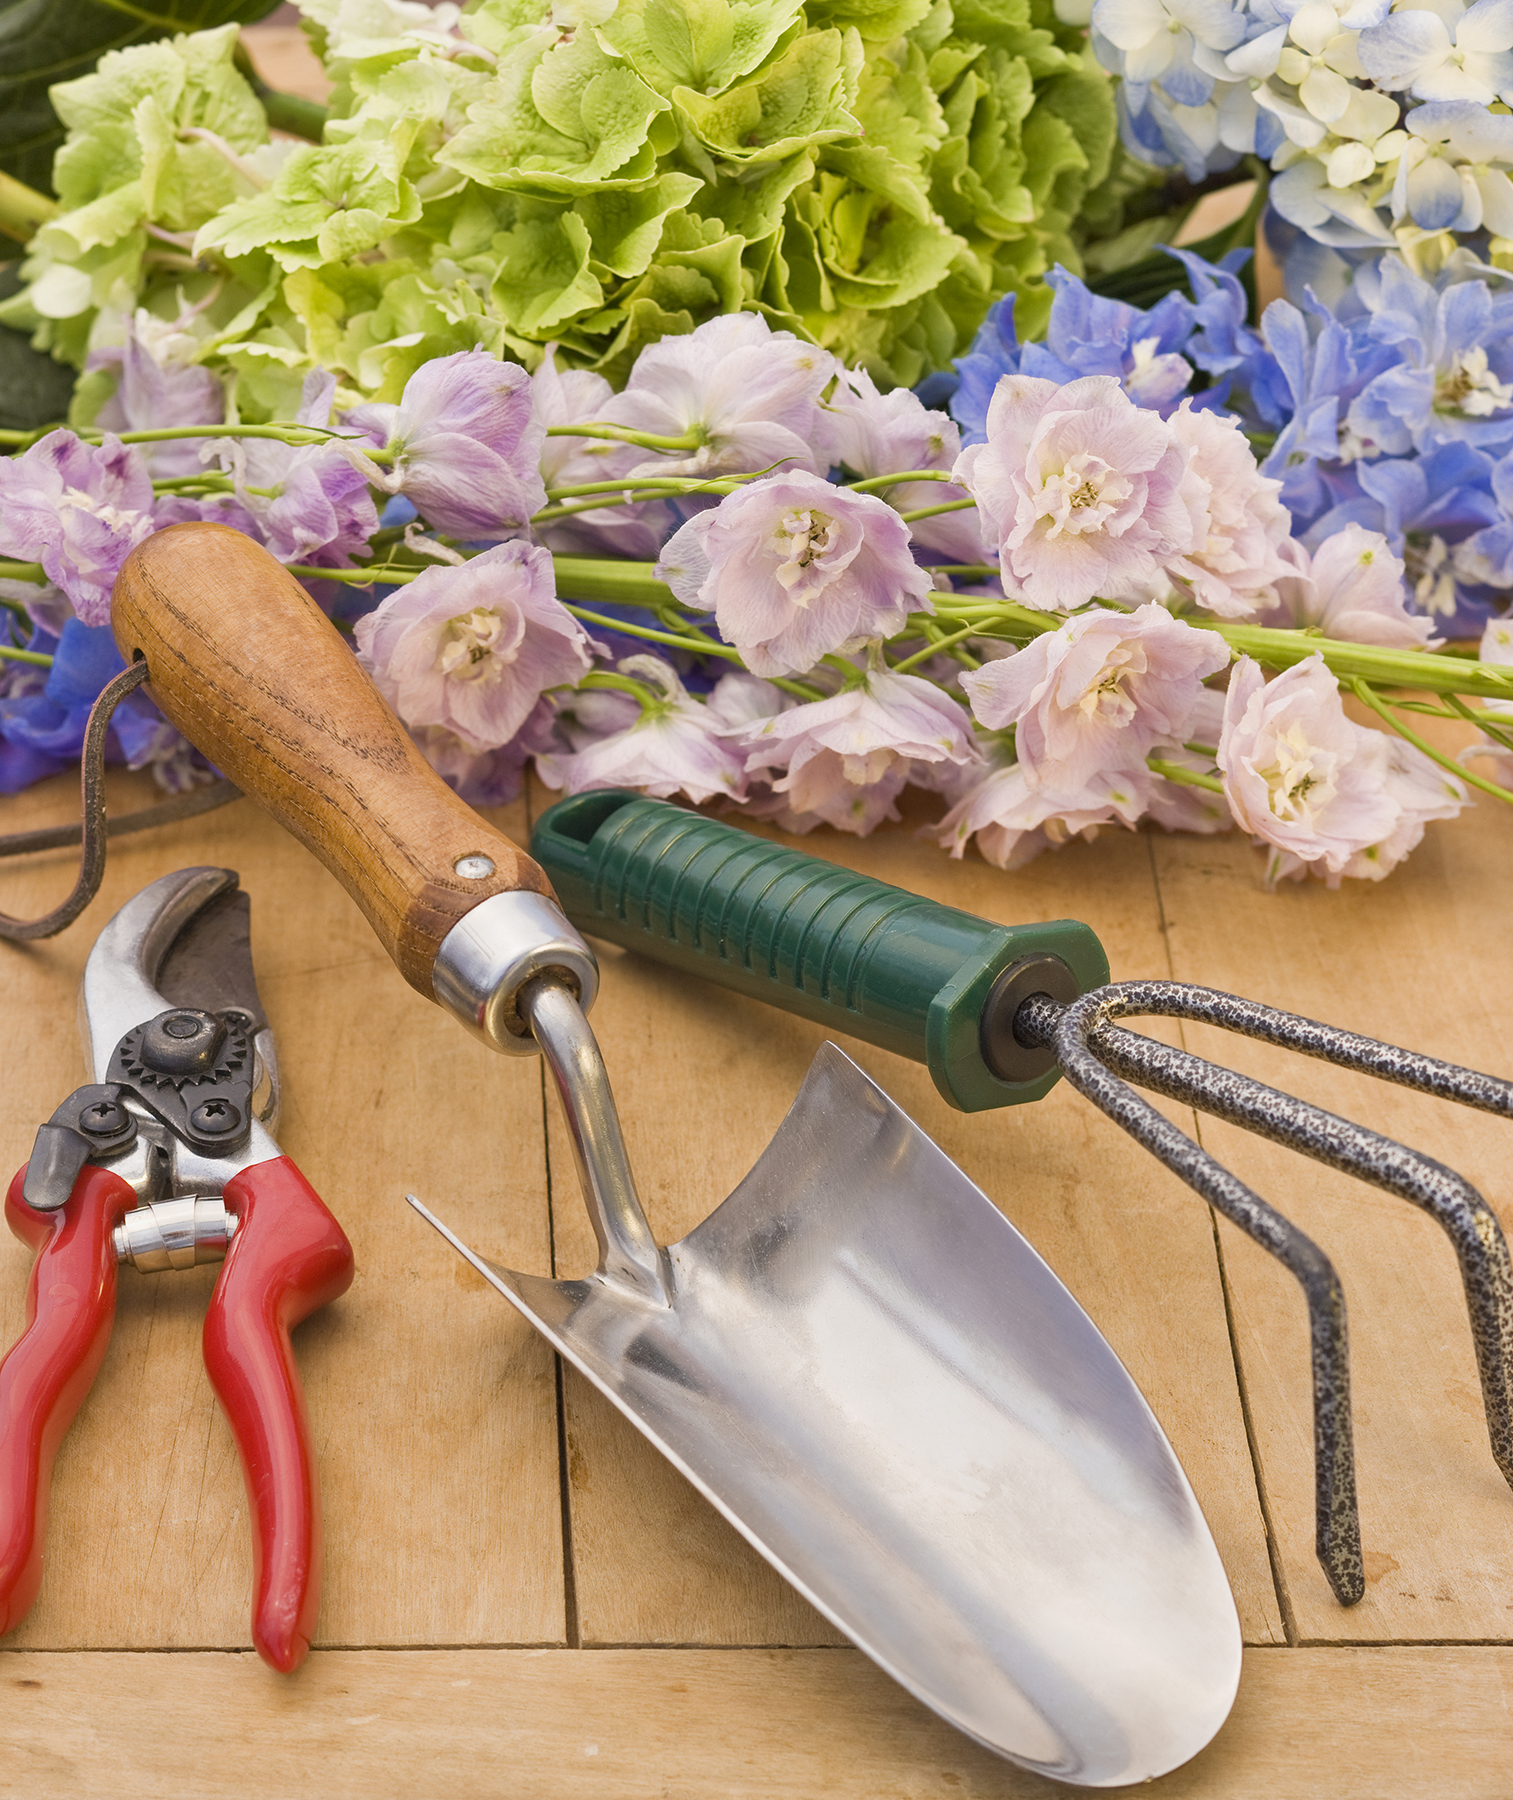 Gardening tools with flowers